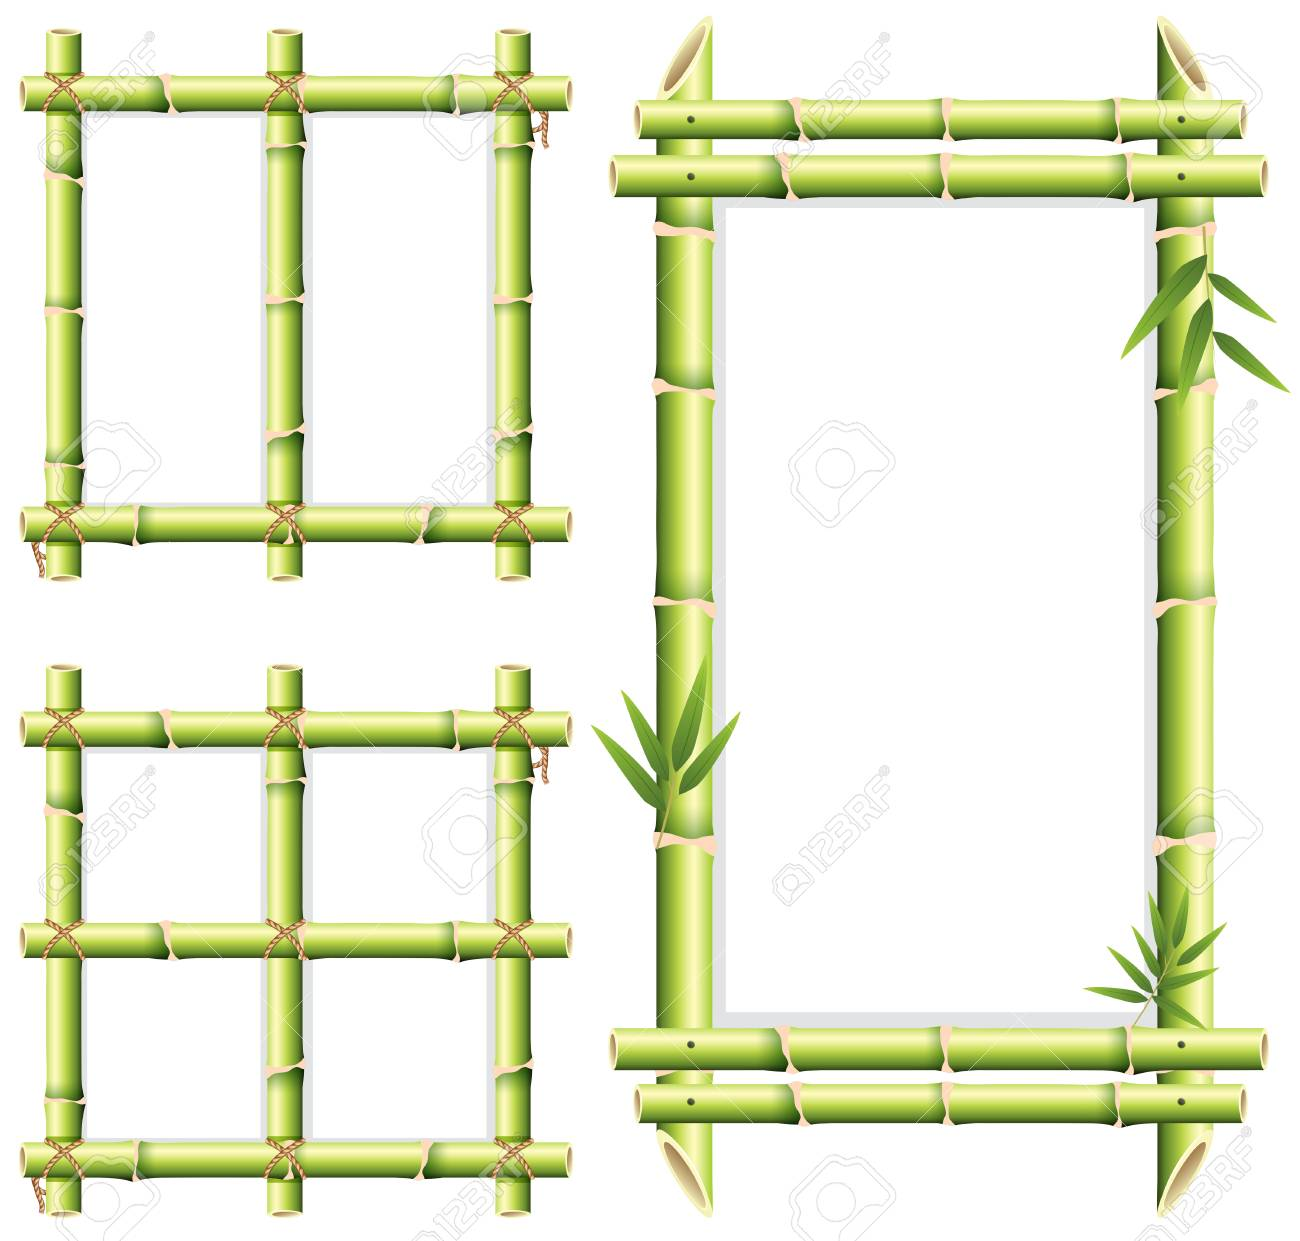 Different Frame Design Of Bamboo Woods Illustration Royalty Free ...